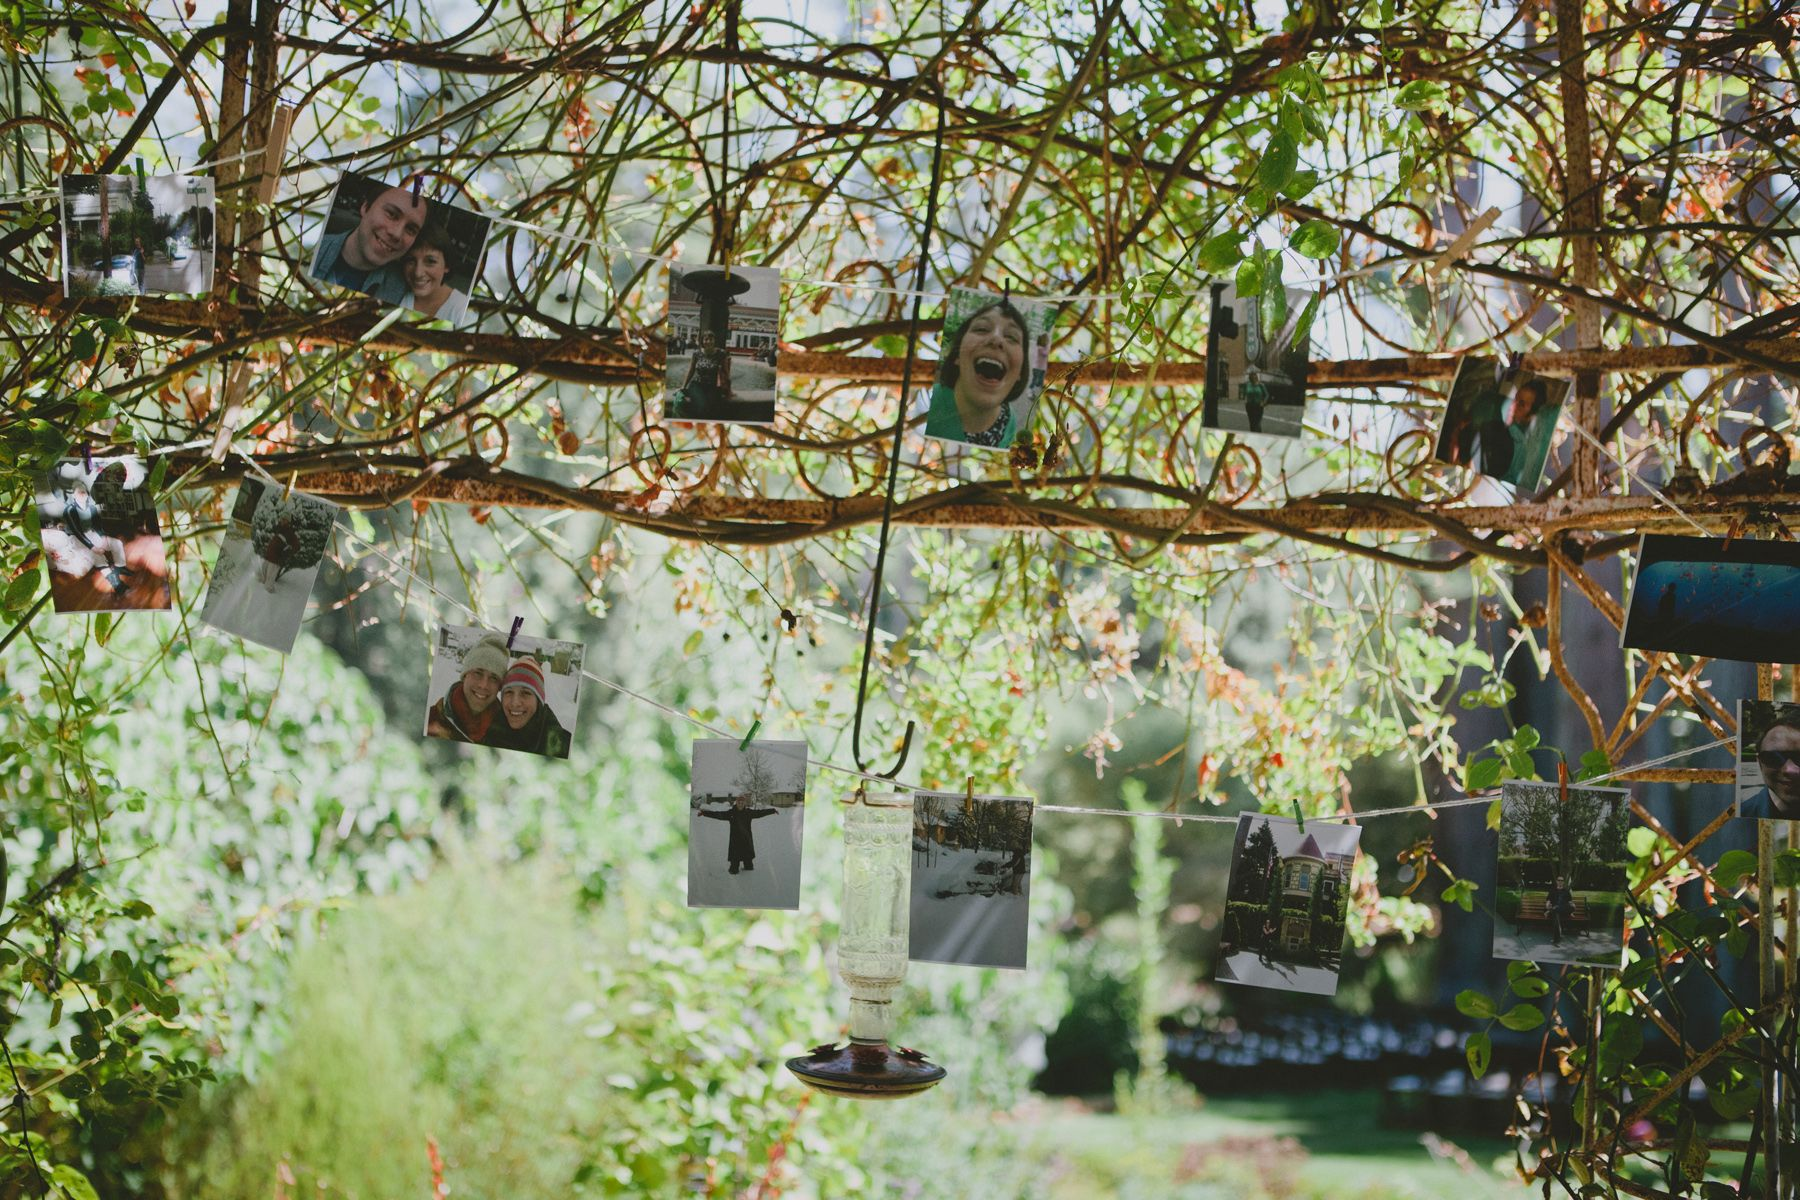 Wedding garland of the couple's photos strung on butcher's twine with clothespins